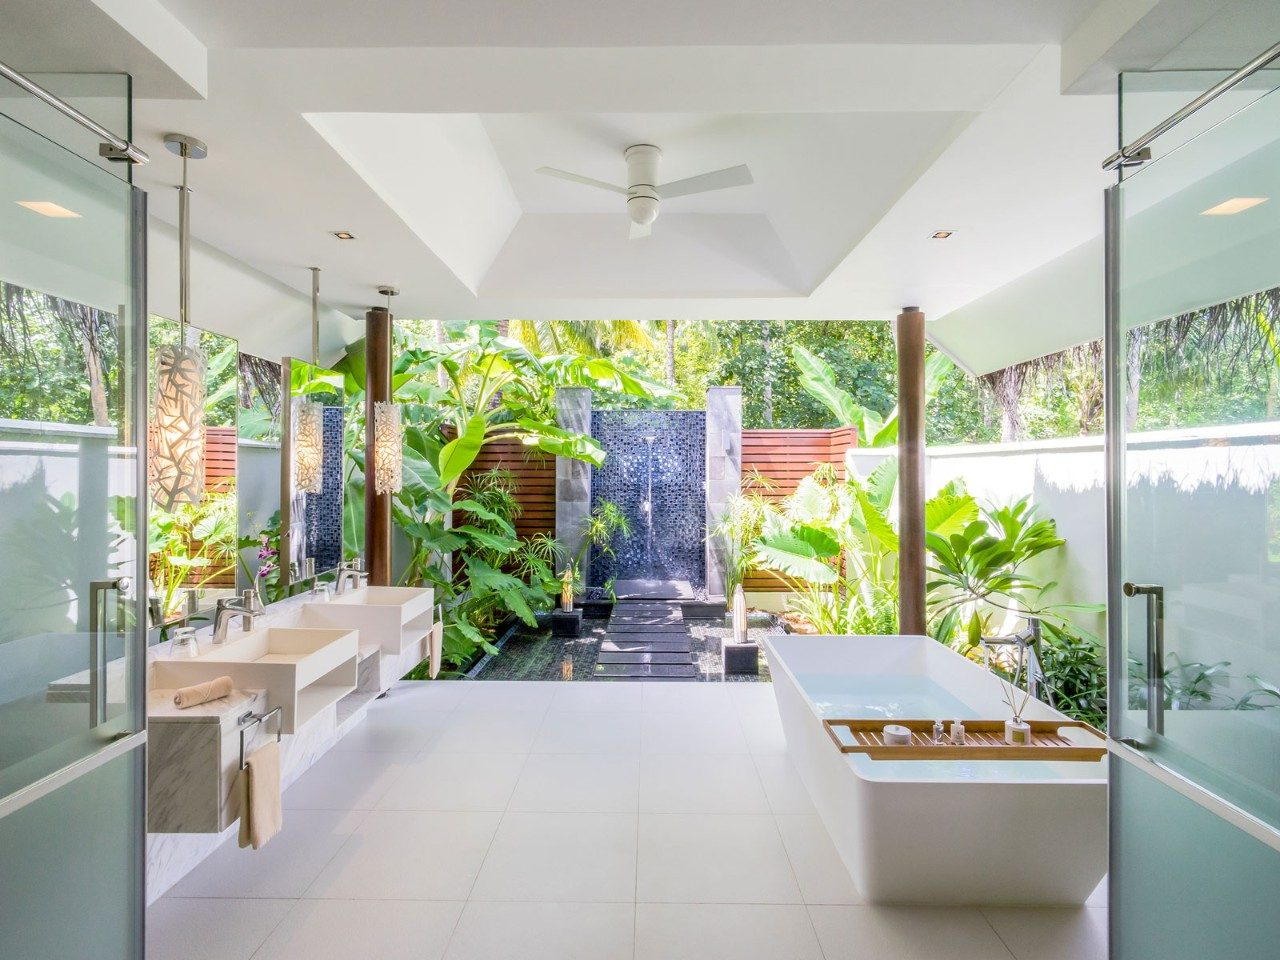 The Best Baths in Luxury Maldives Resorts